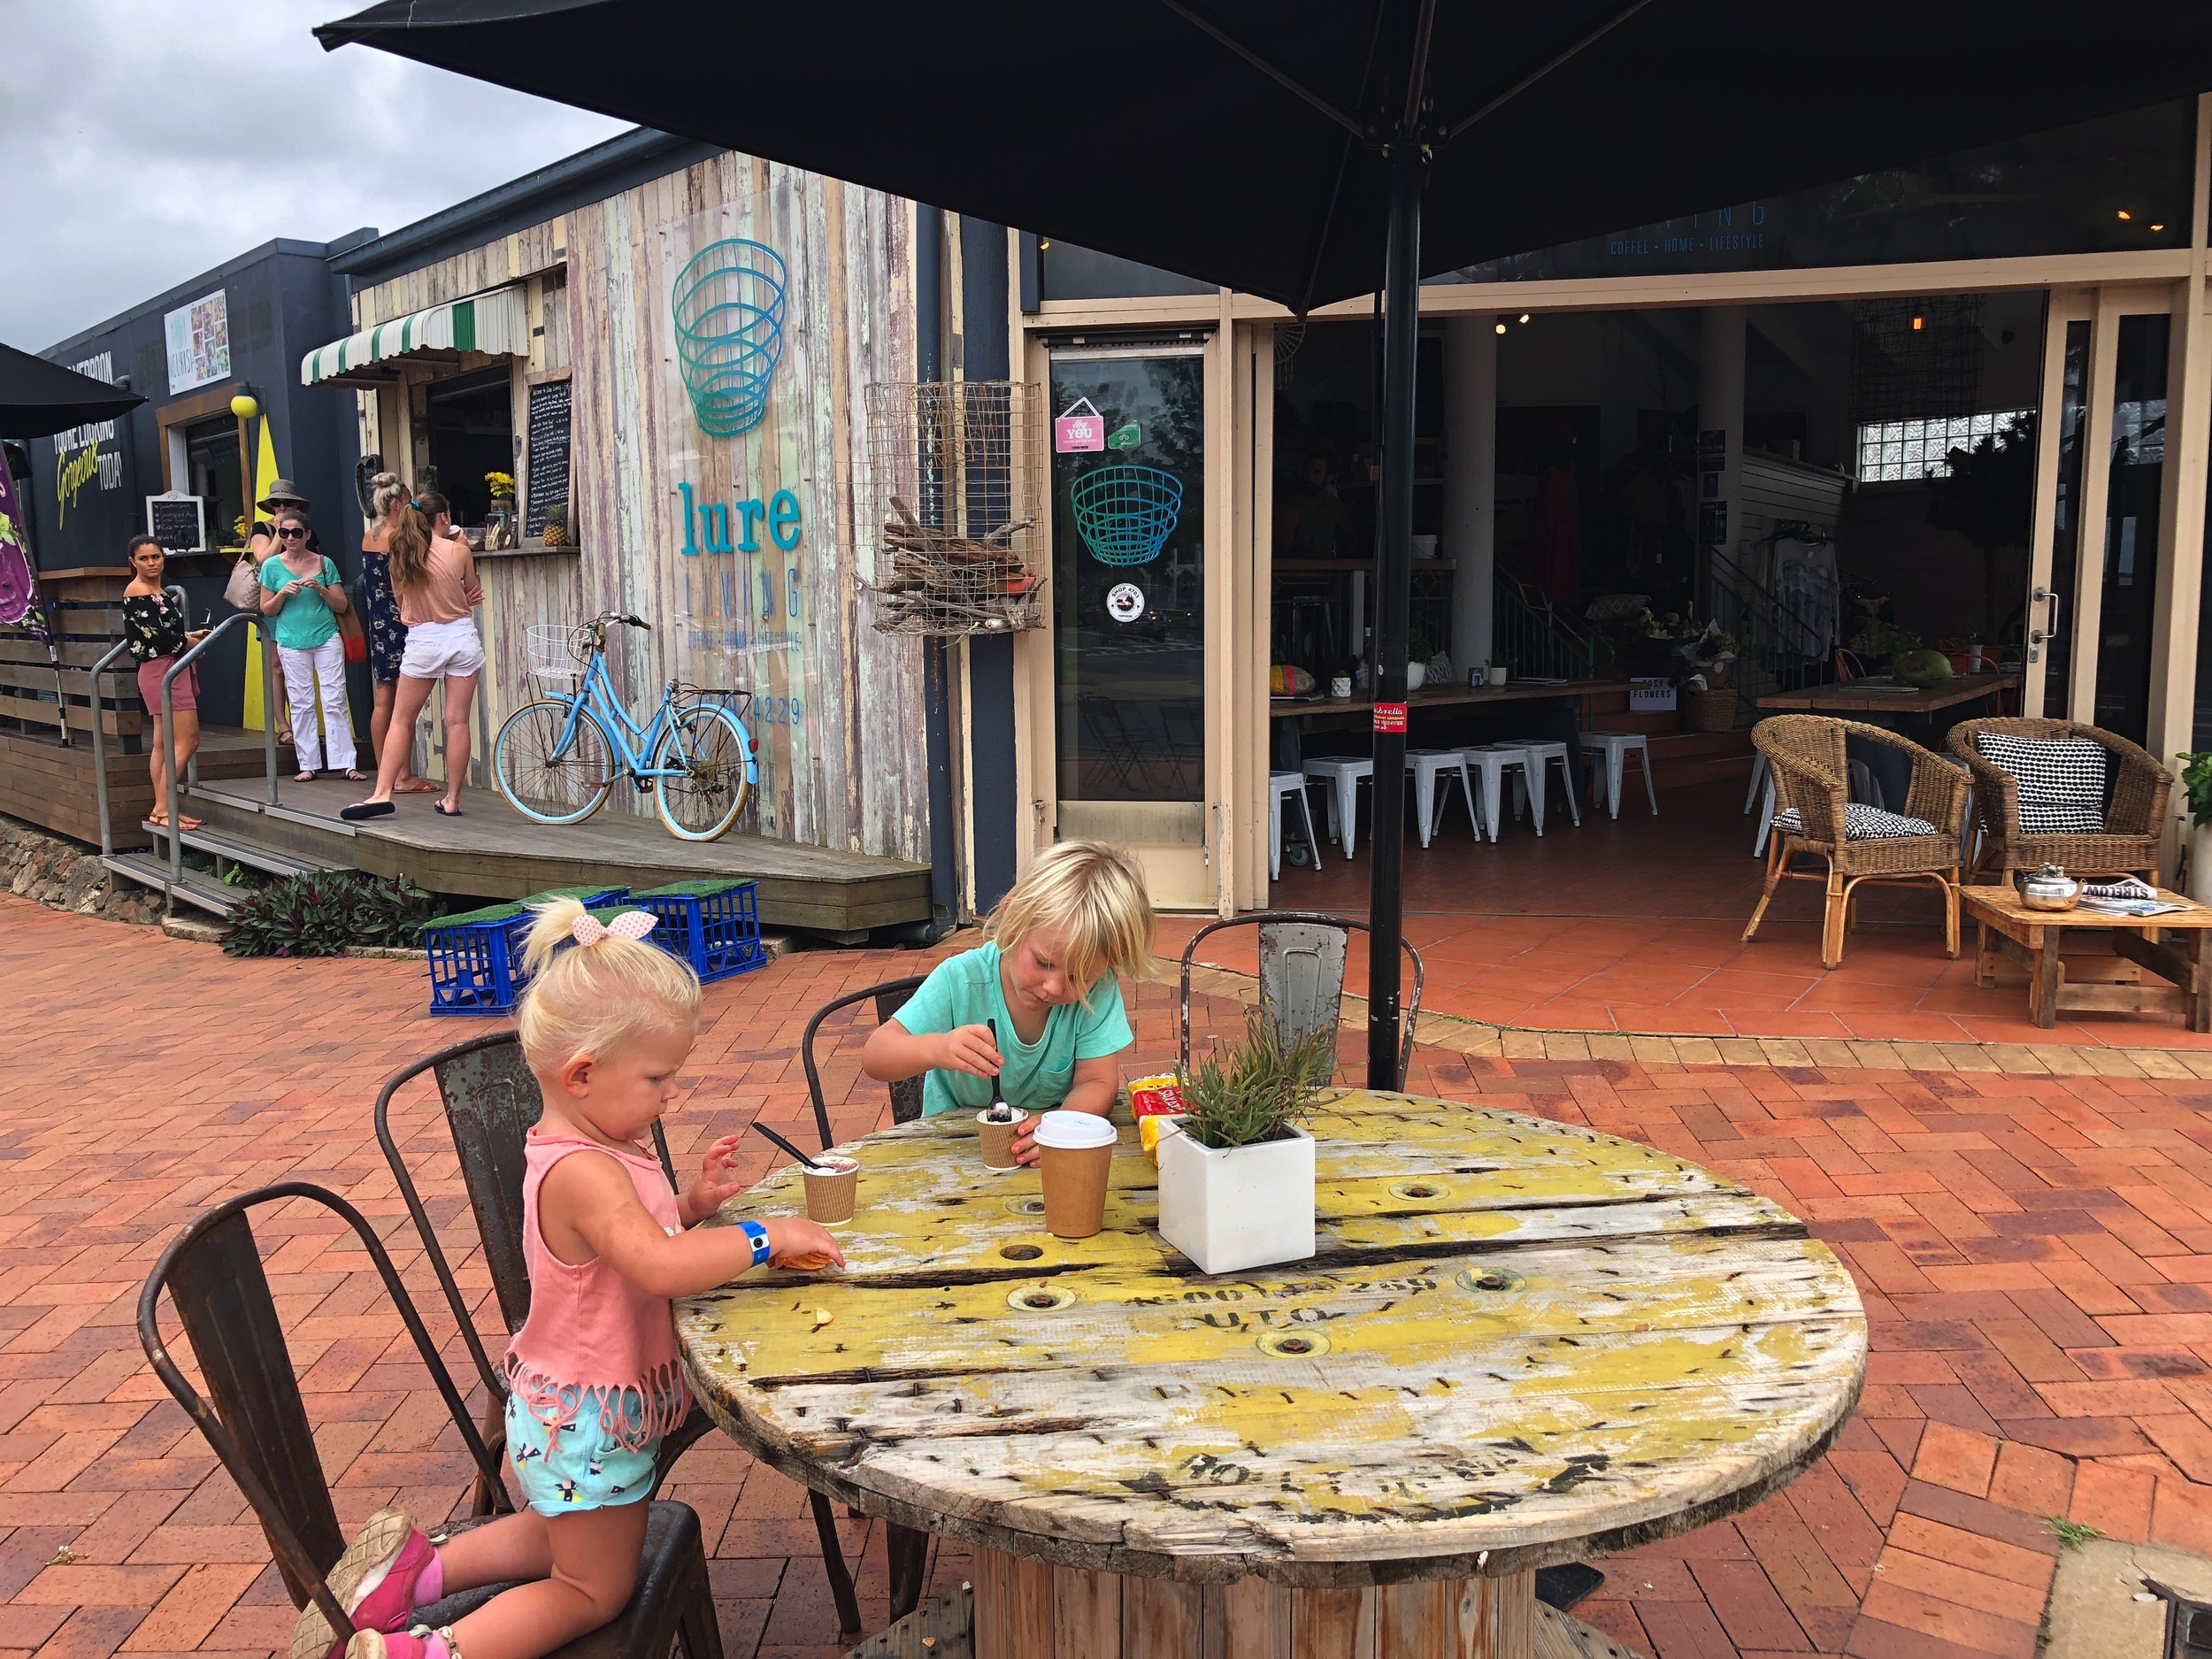 'Lure Living' Cafe    - IF YOU LOVE A GOOD COFFEE, CHECK THIS PLACE OUT ON THE WATERFRONT- fantastic brew & a funky place to chill out!!